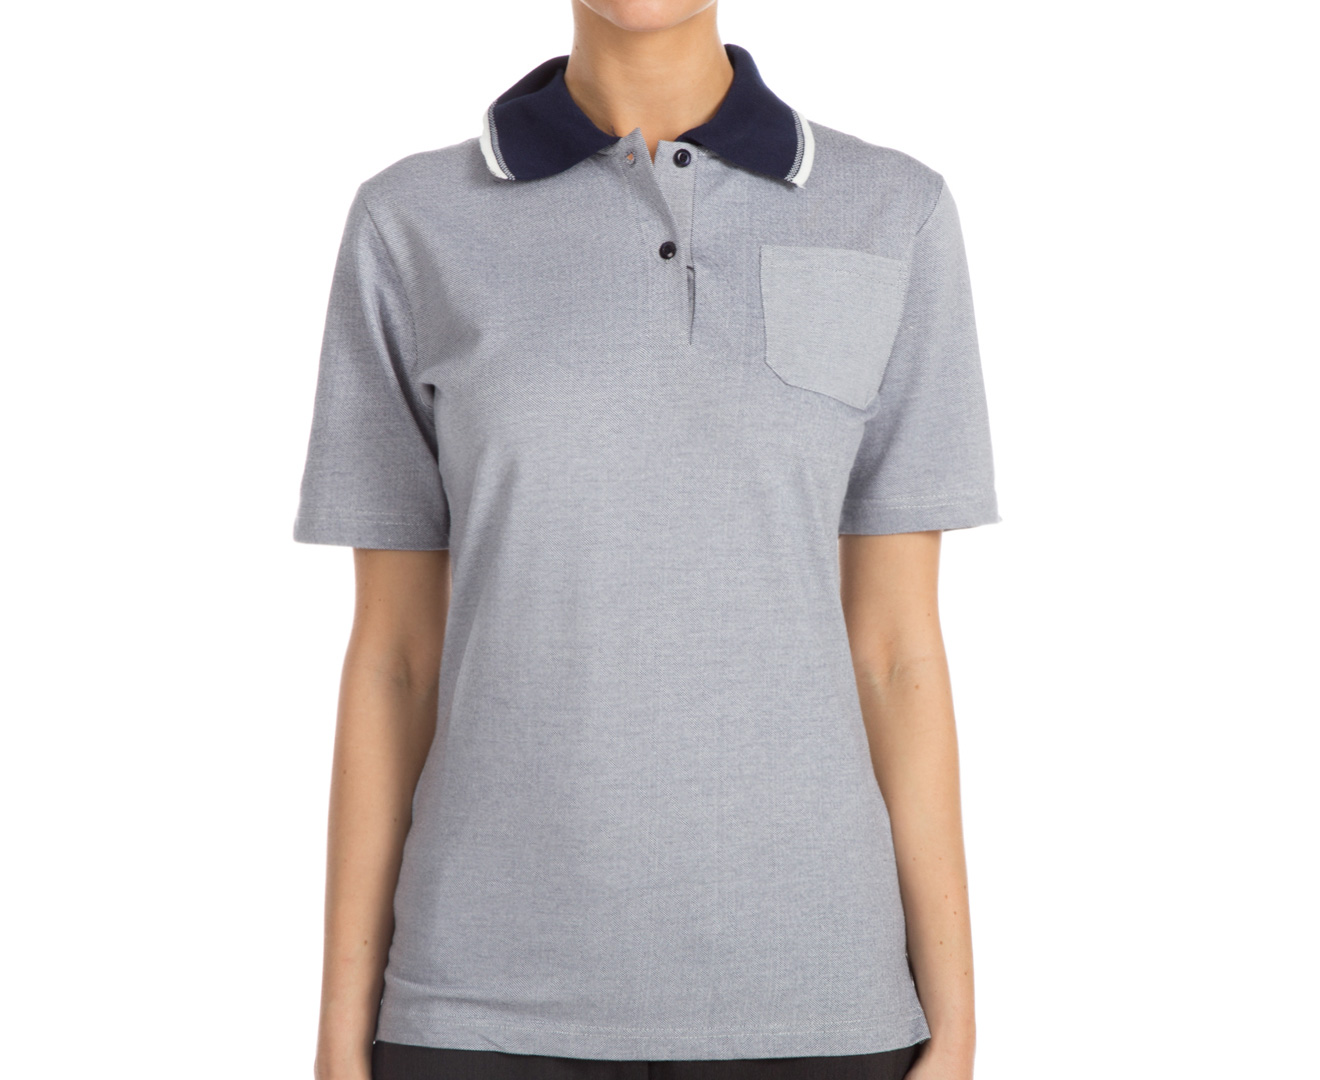 Totally Corporate Women 39 S Short Sleeve Polo Shirt Navy